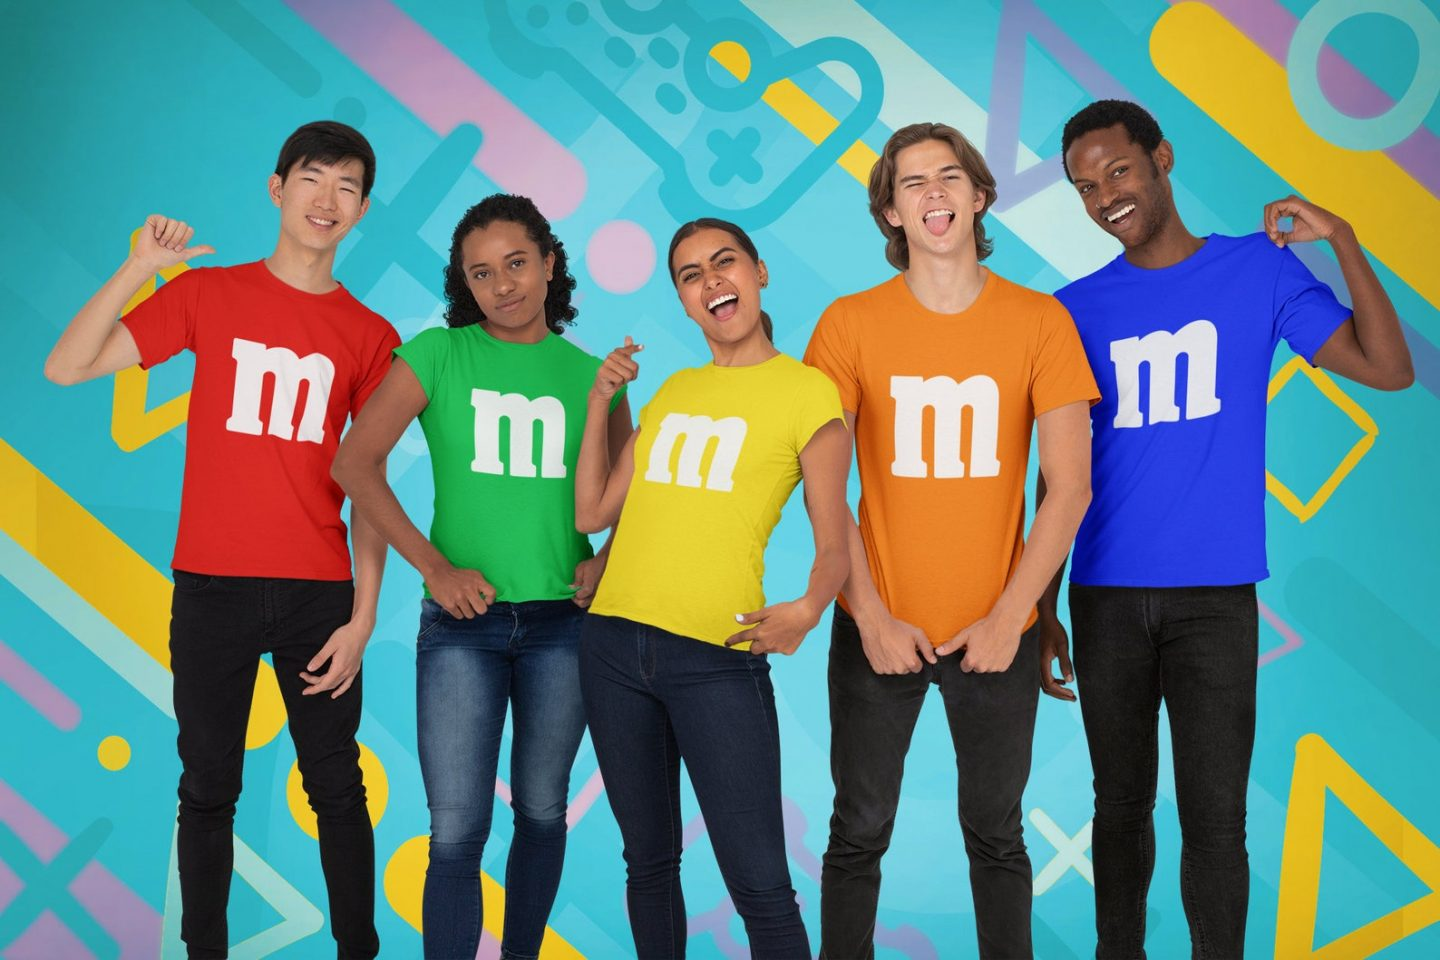 M&Ms group Halloween costumes